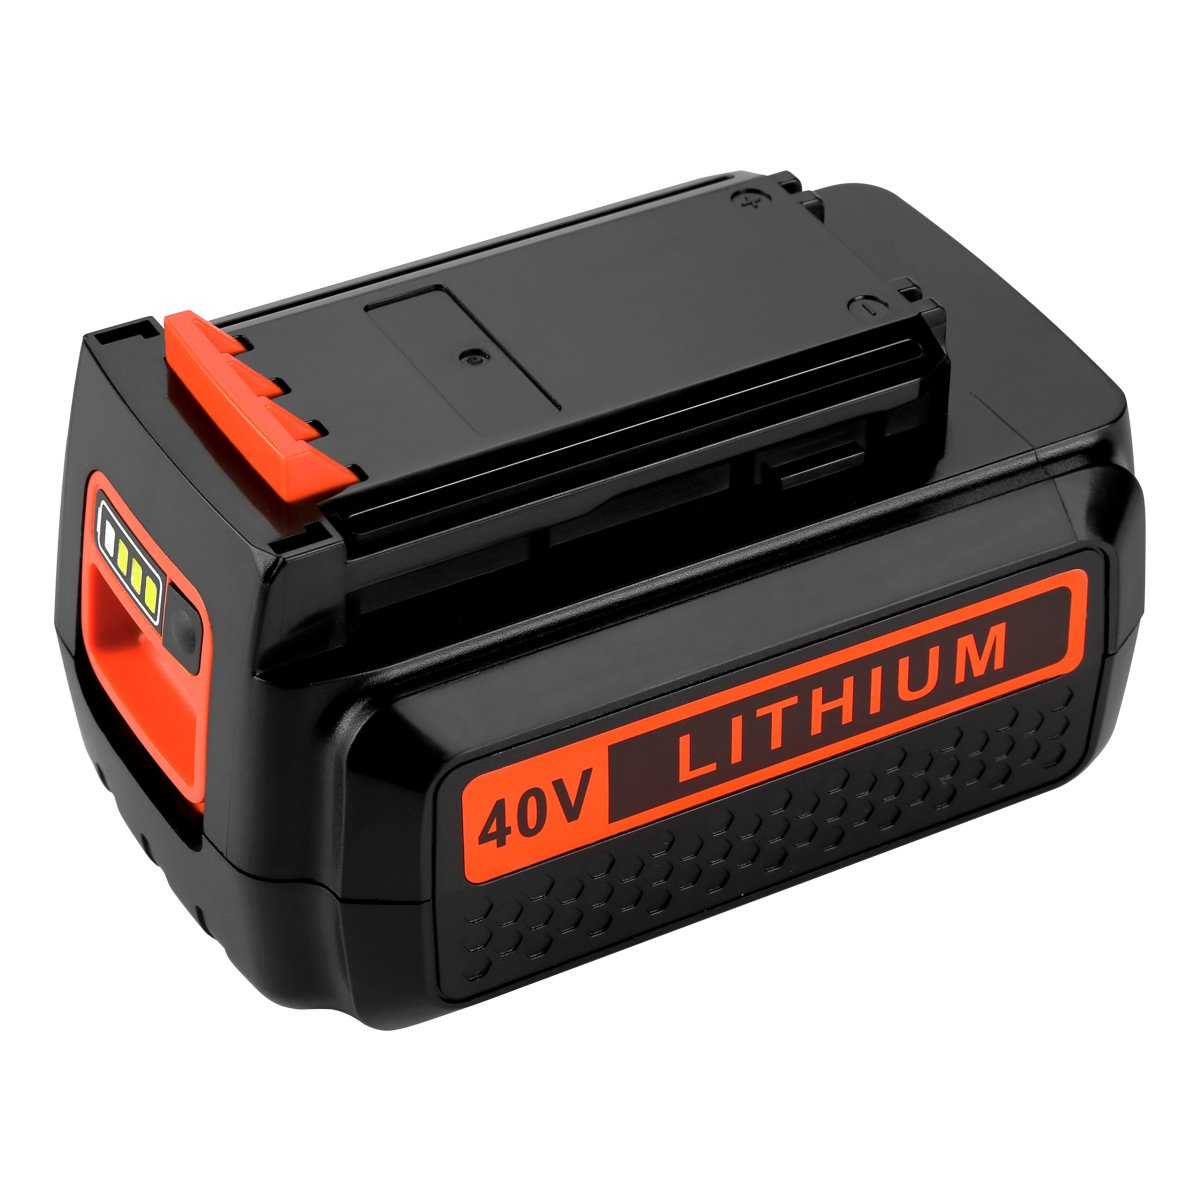 Powilling 40 Volt MAX 2.2Ah Lithium Replacement Battery for Black and Decker 40V Battery LBX2040 LBXR36 LBXR2036 LST540 LCS1240 LBX1540 LST136W Black+Decker Lithium Battery